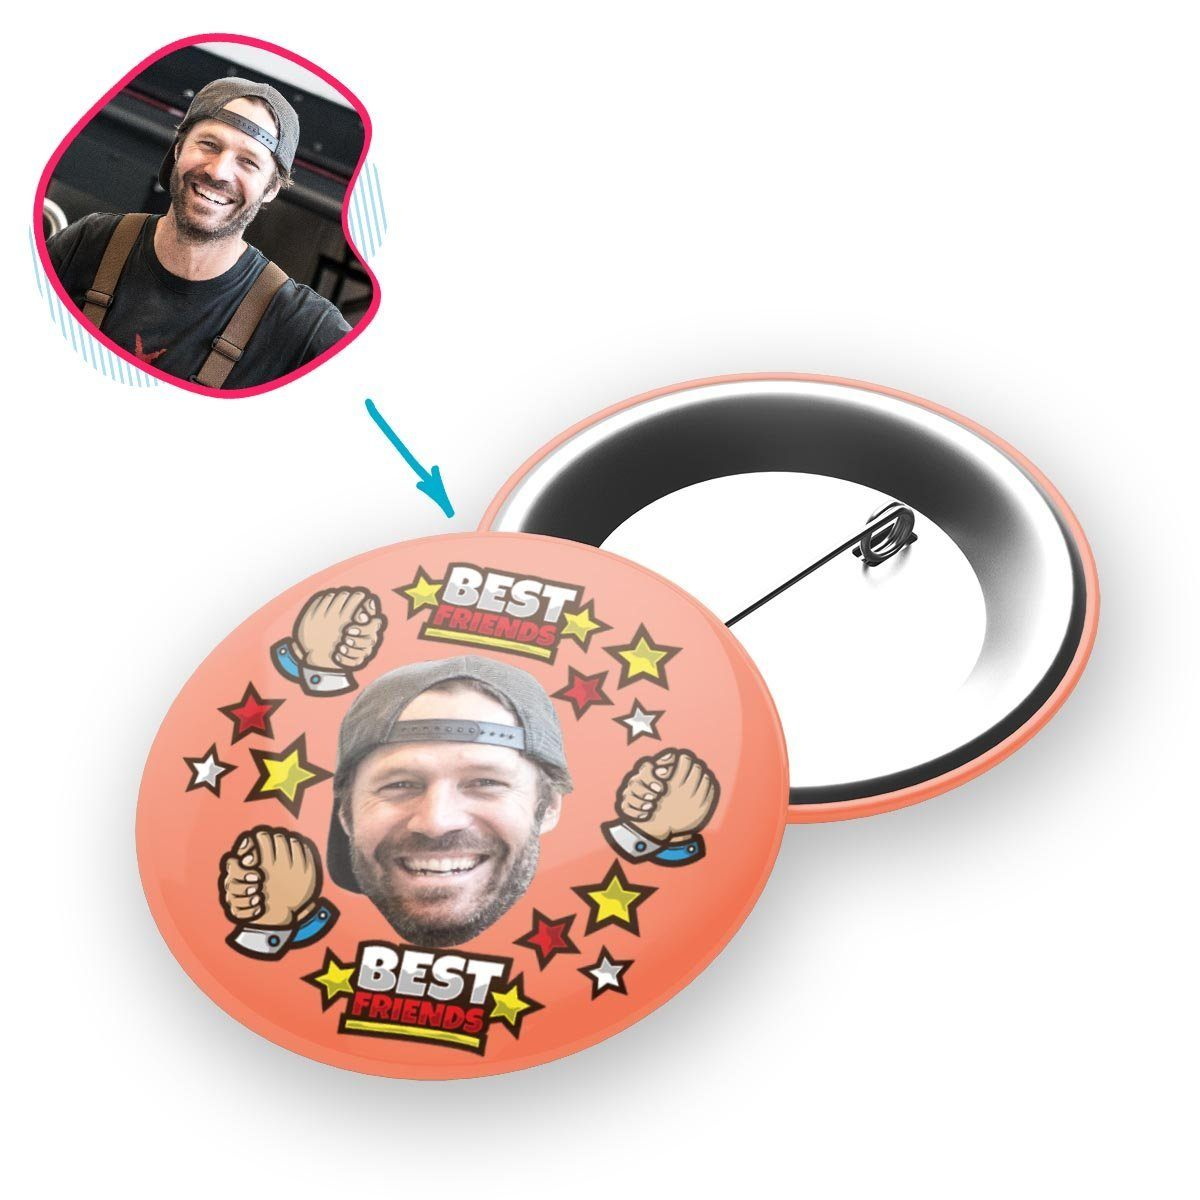 salmon Best Friends pin personalized with photo of face printed on it